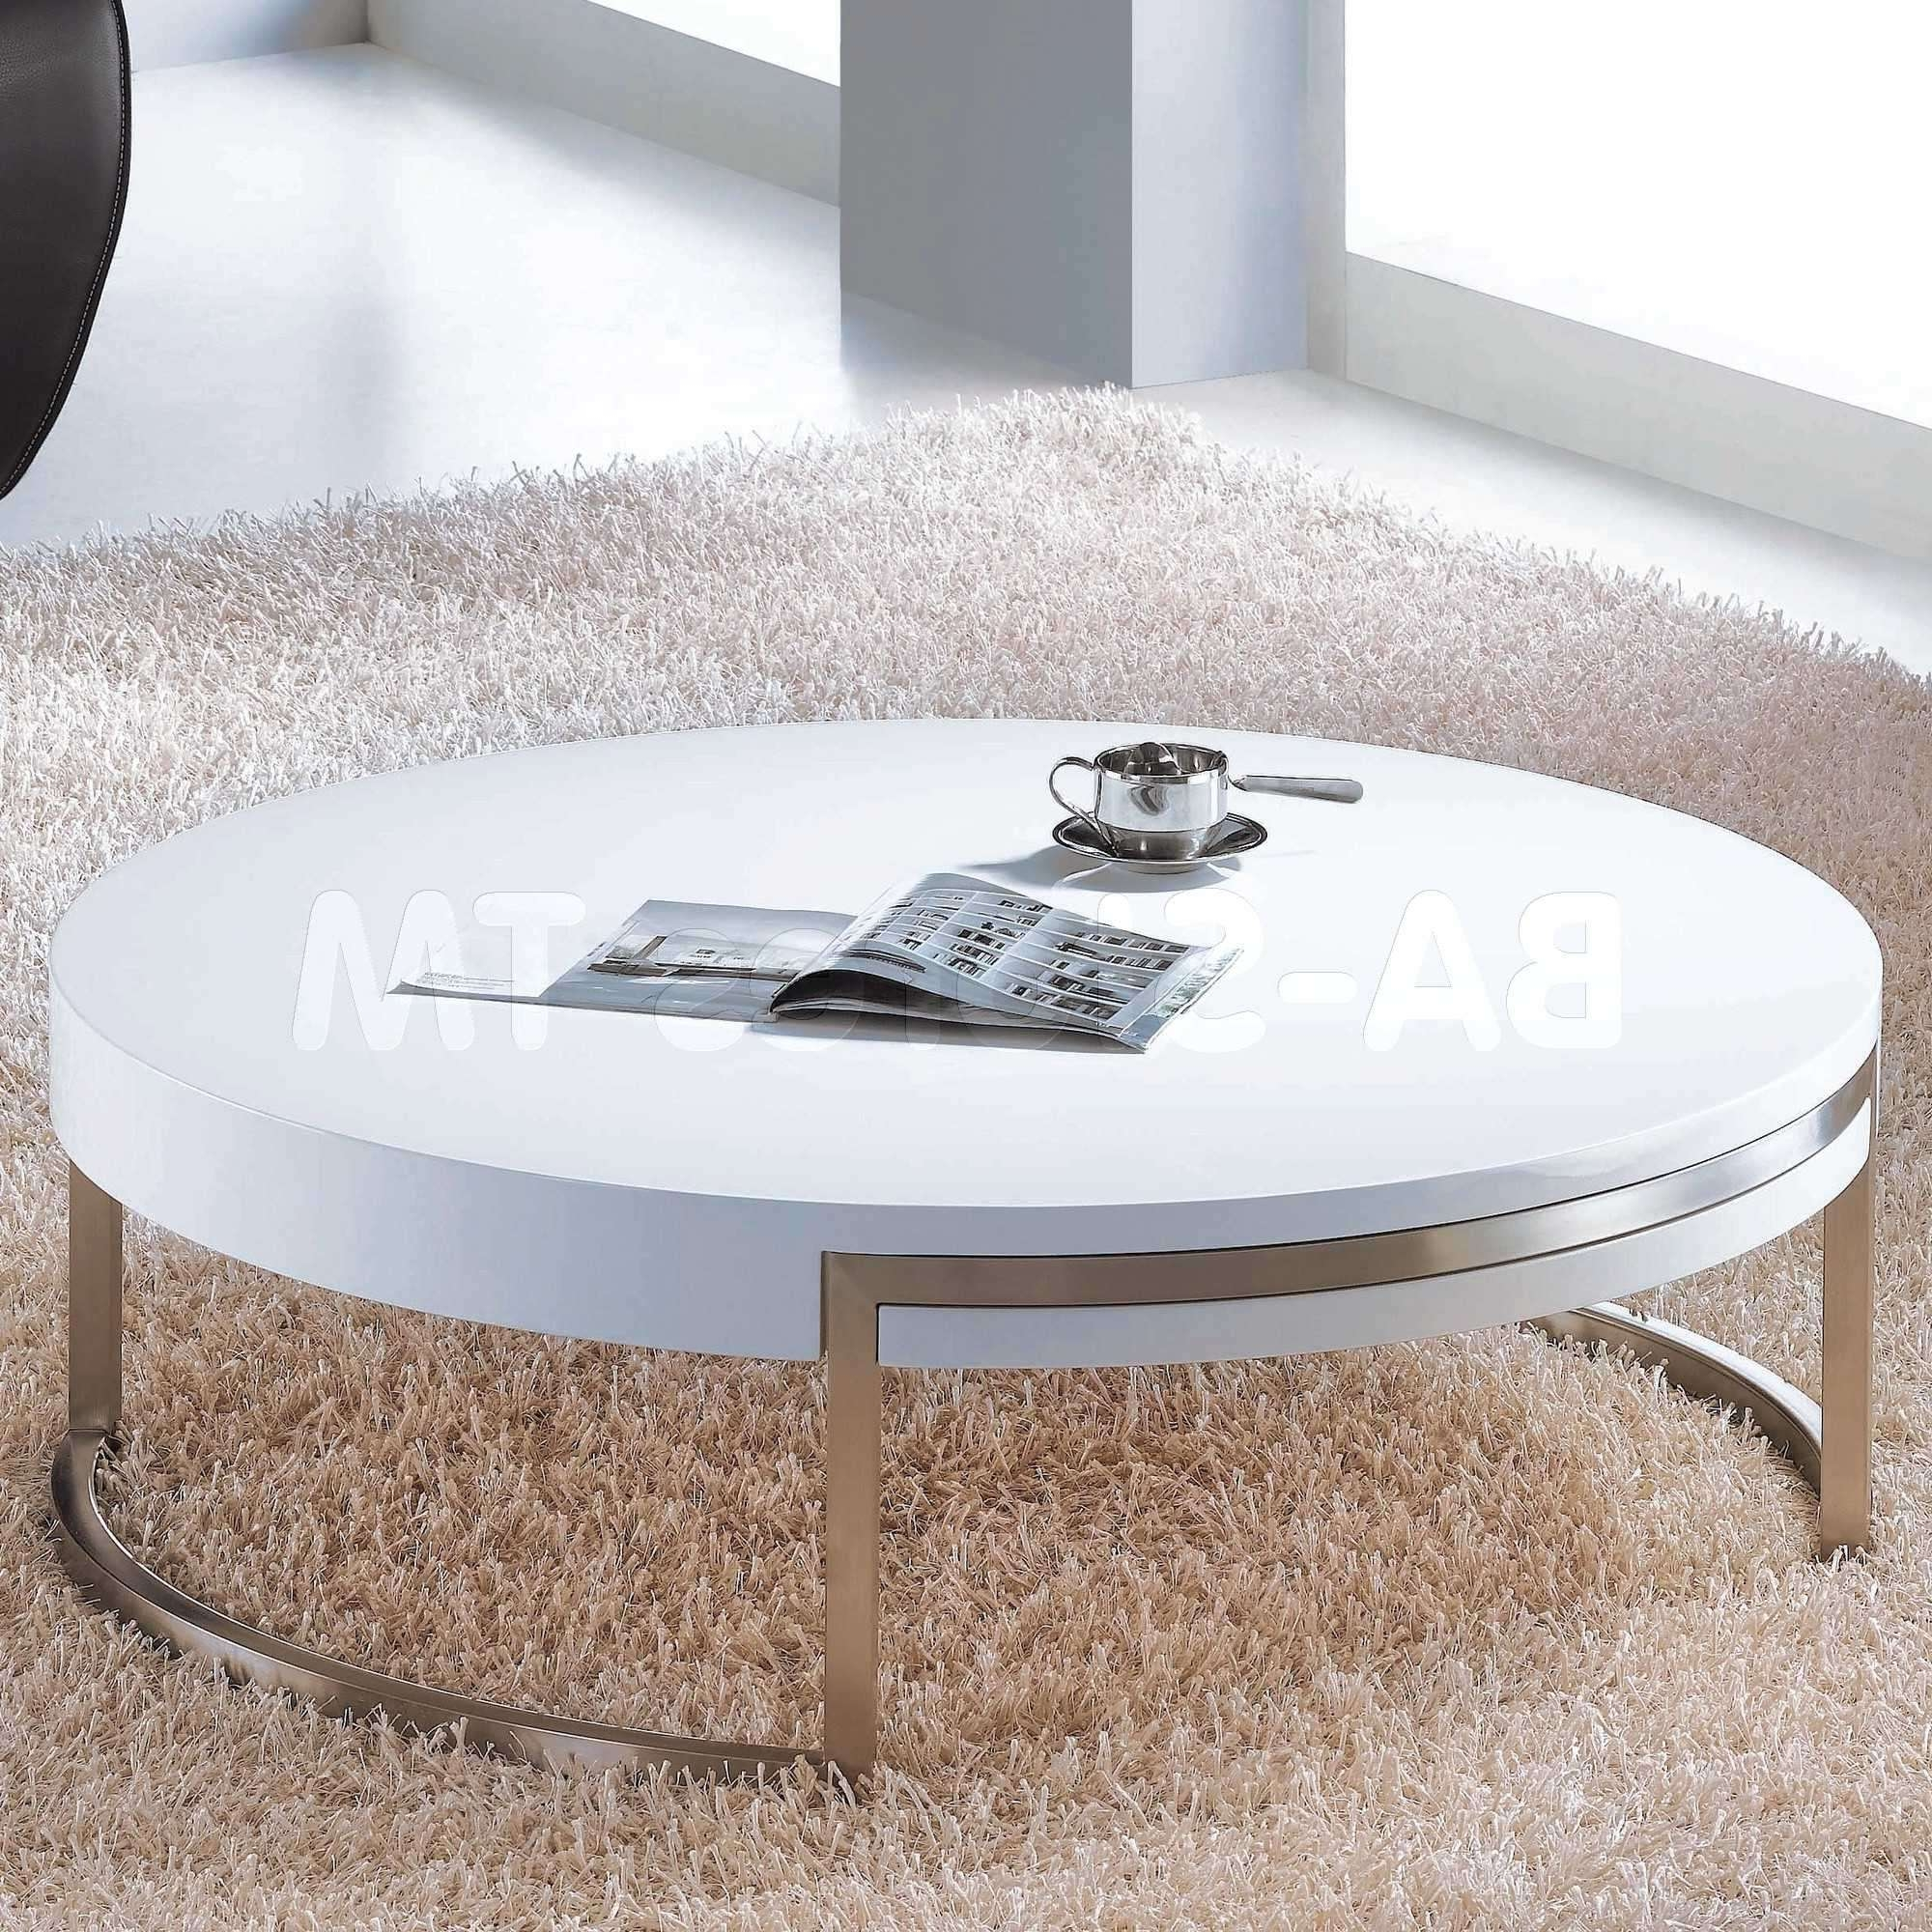 Well Known Oval Gloss Coffee Tables Regarding Oval Gloss Coffee Table White – White Gloss Oval Coffee Table Oval (View 19 of 20)